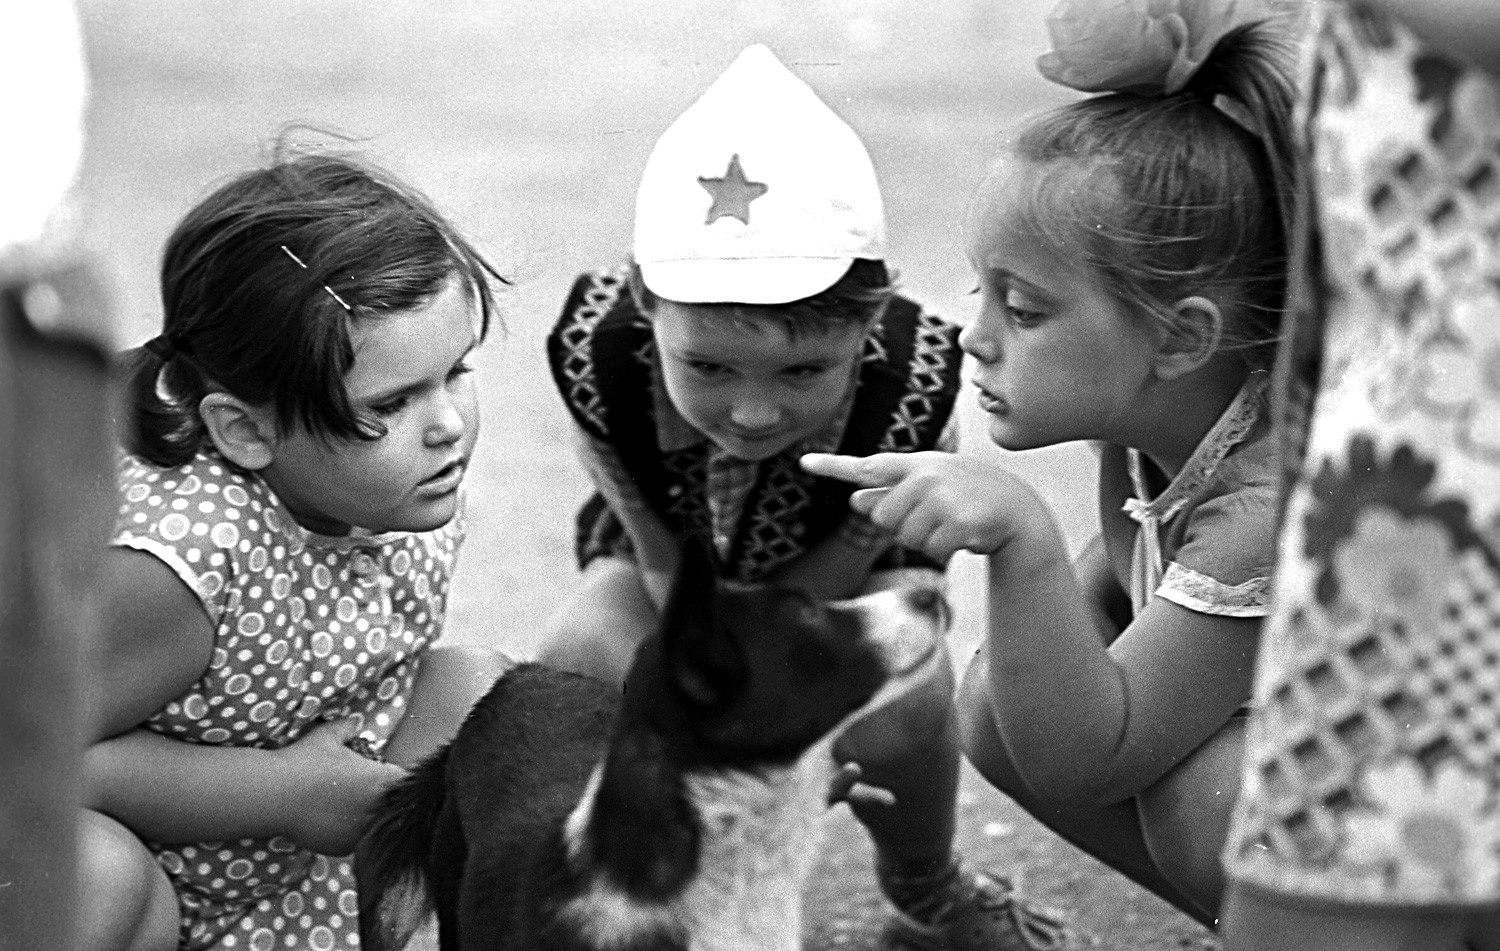 Children playing with a dog, Crimea.